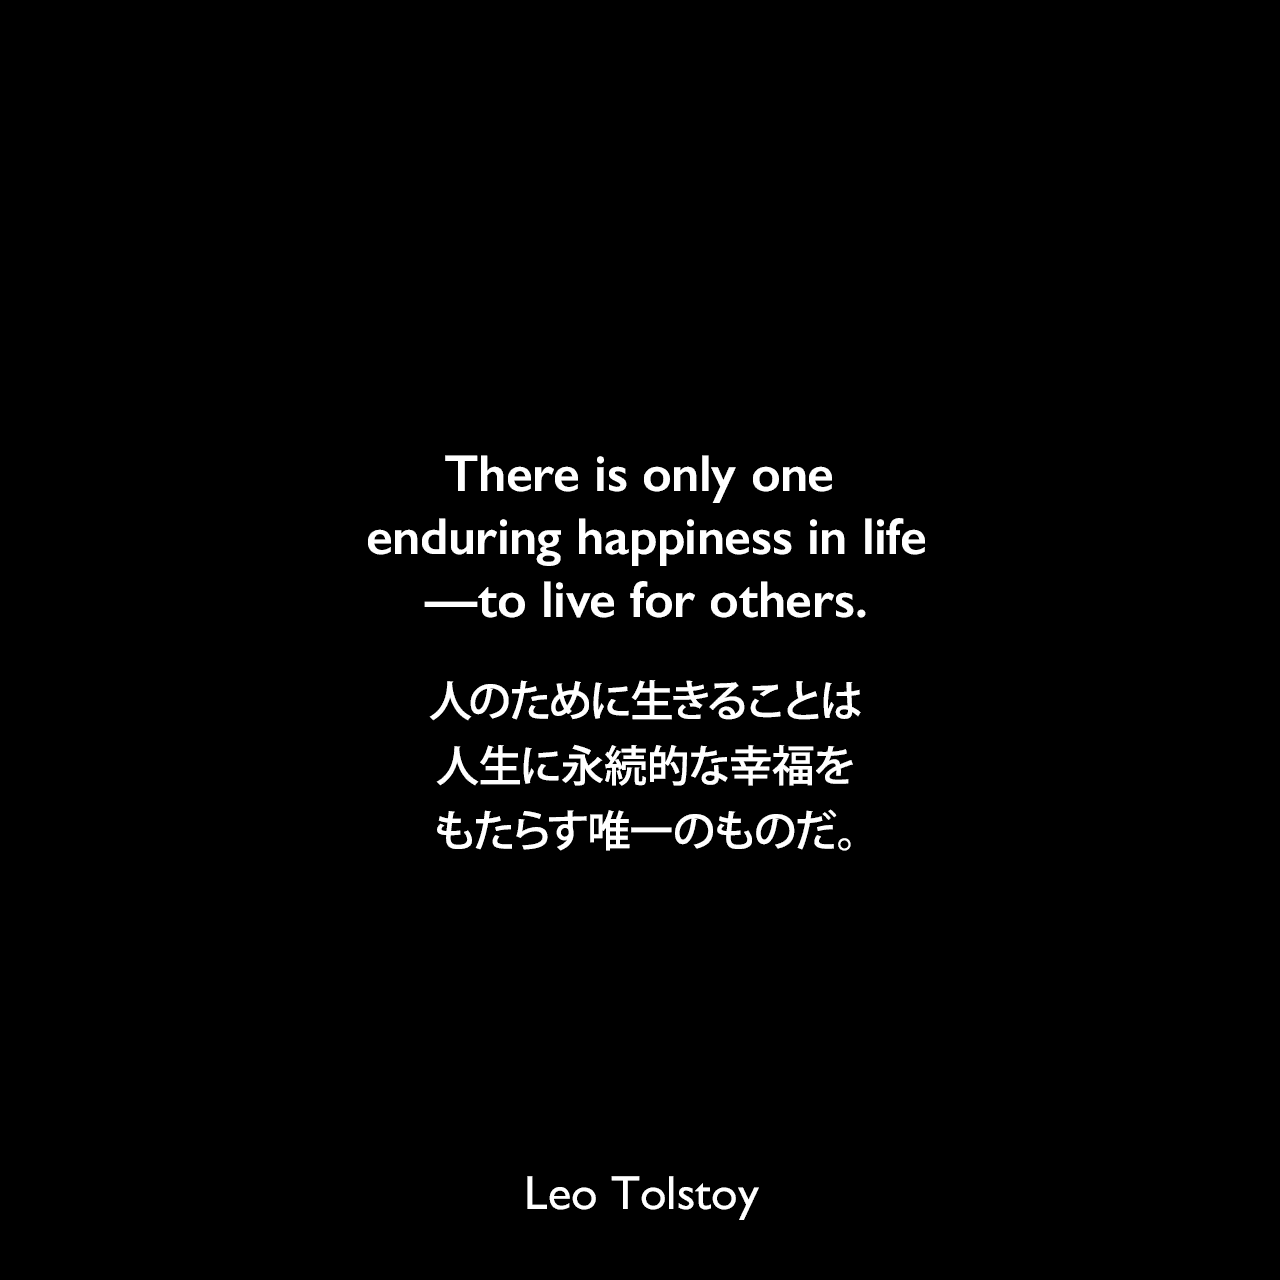 There is only one enduring happiness in life—to live for others.人のために生きることは、人生に永続的な幸福をもたらす唯一のものだ。- トルストイによる本「幸せな家庭」より